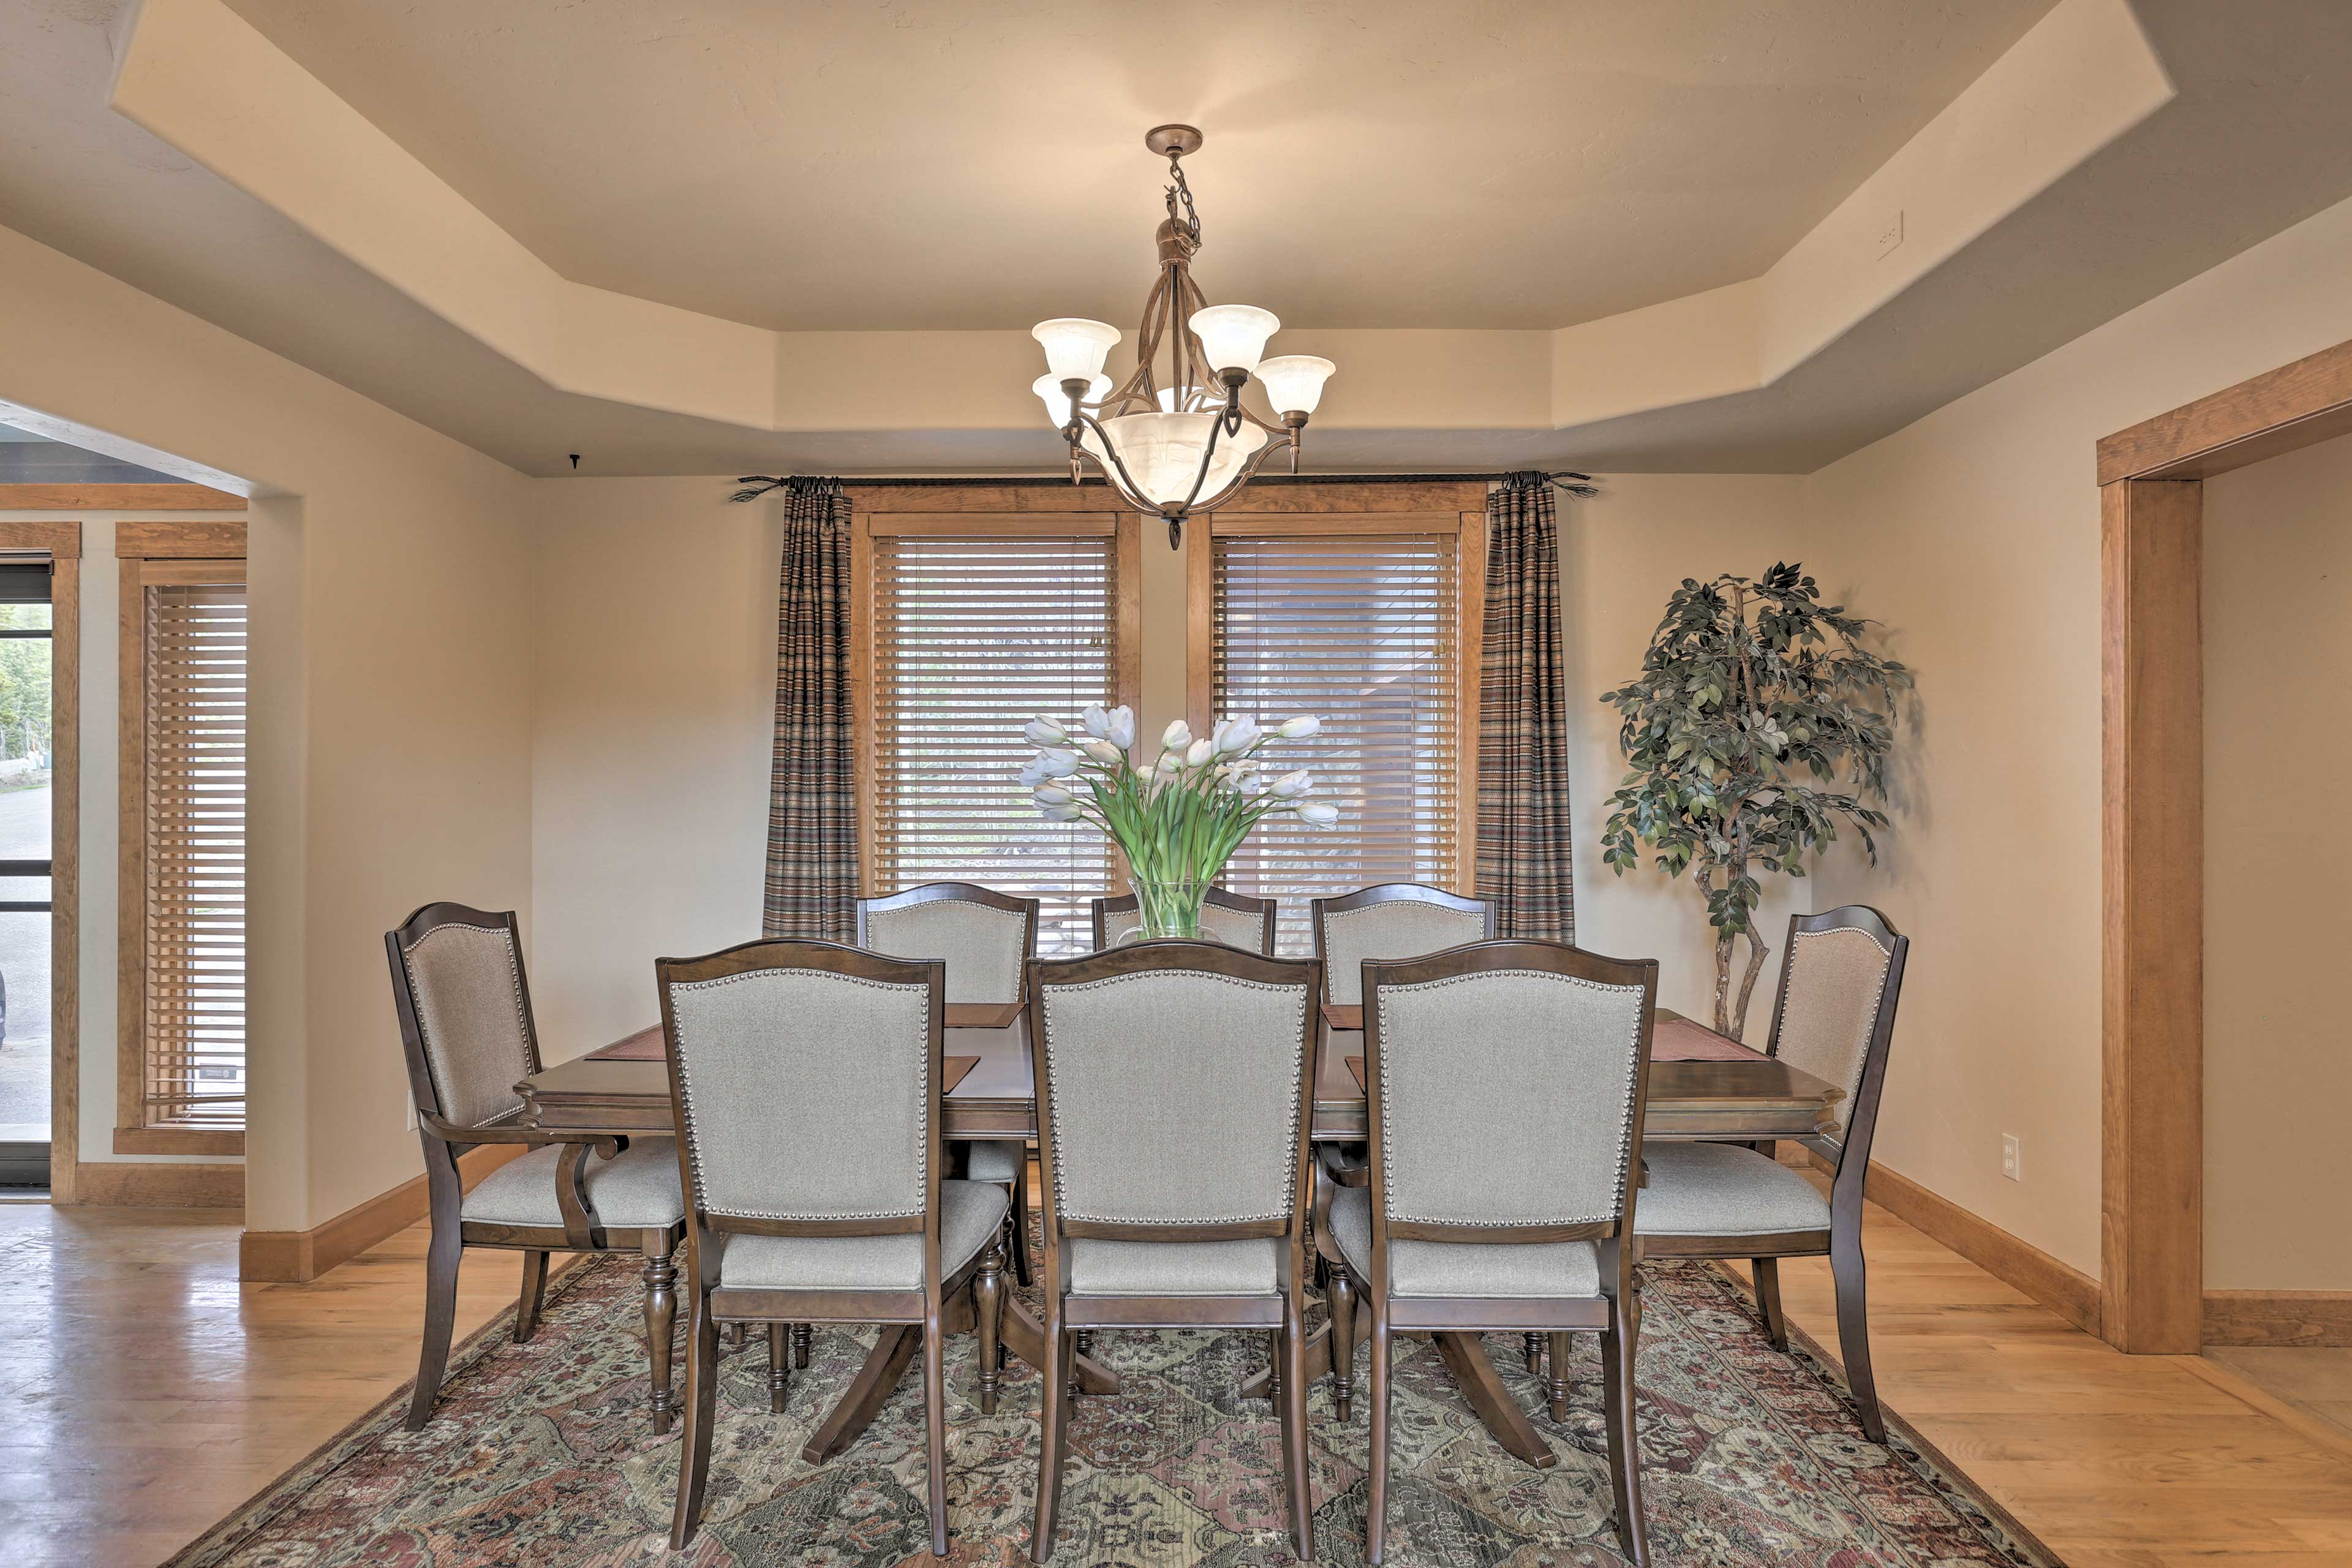 Host family dinners at the banquet-style dining table.